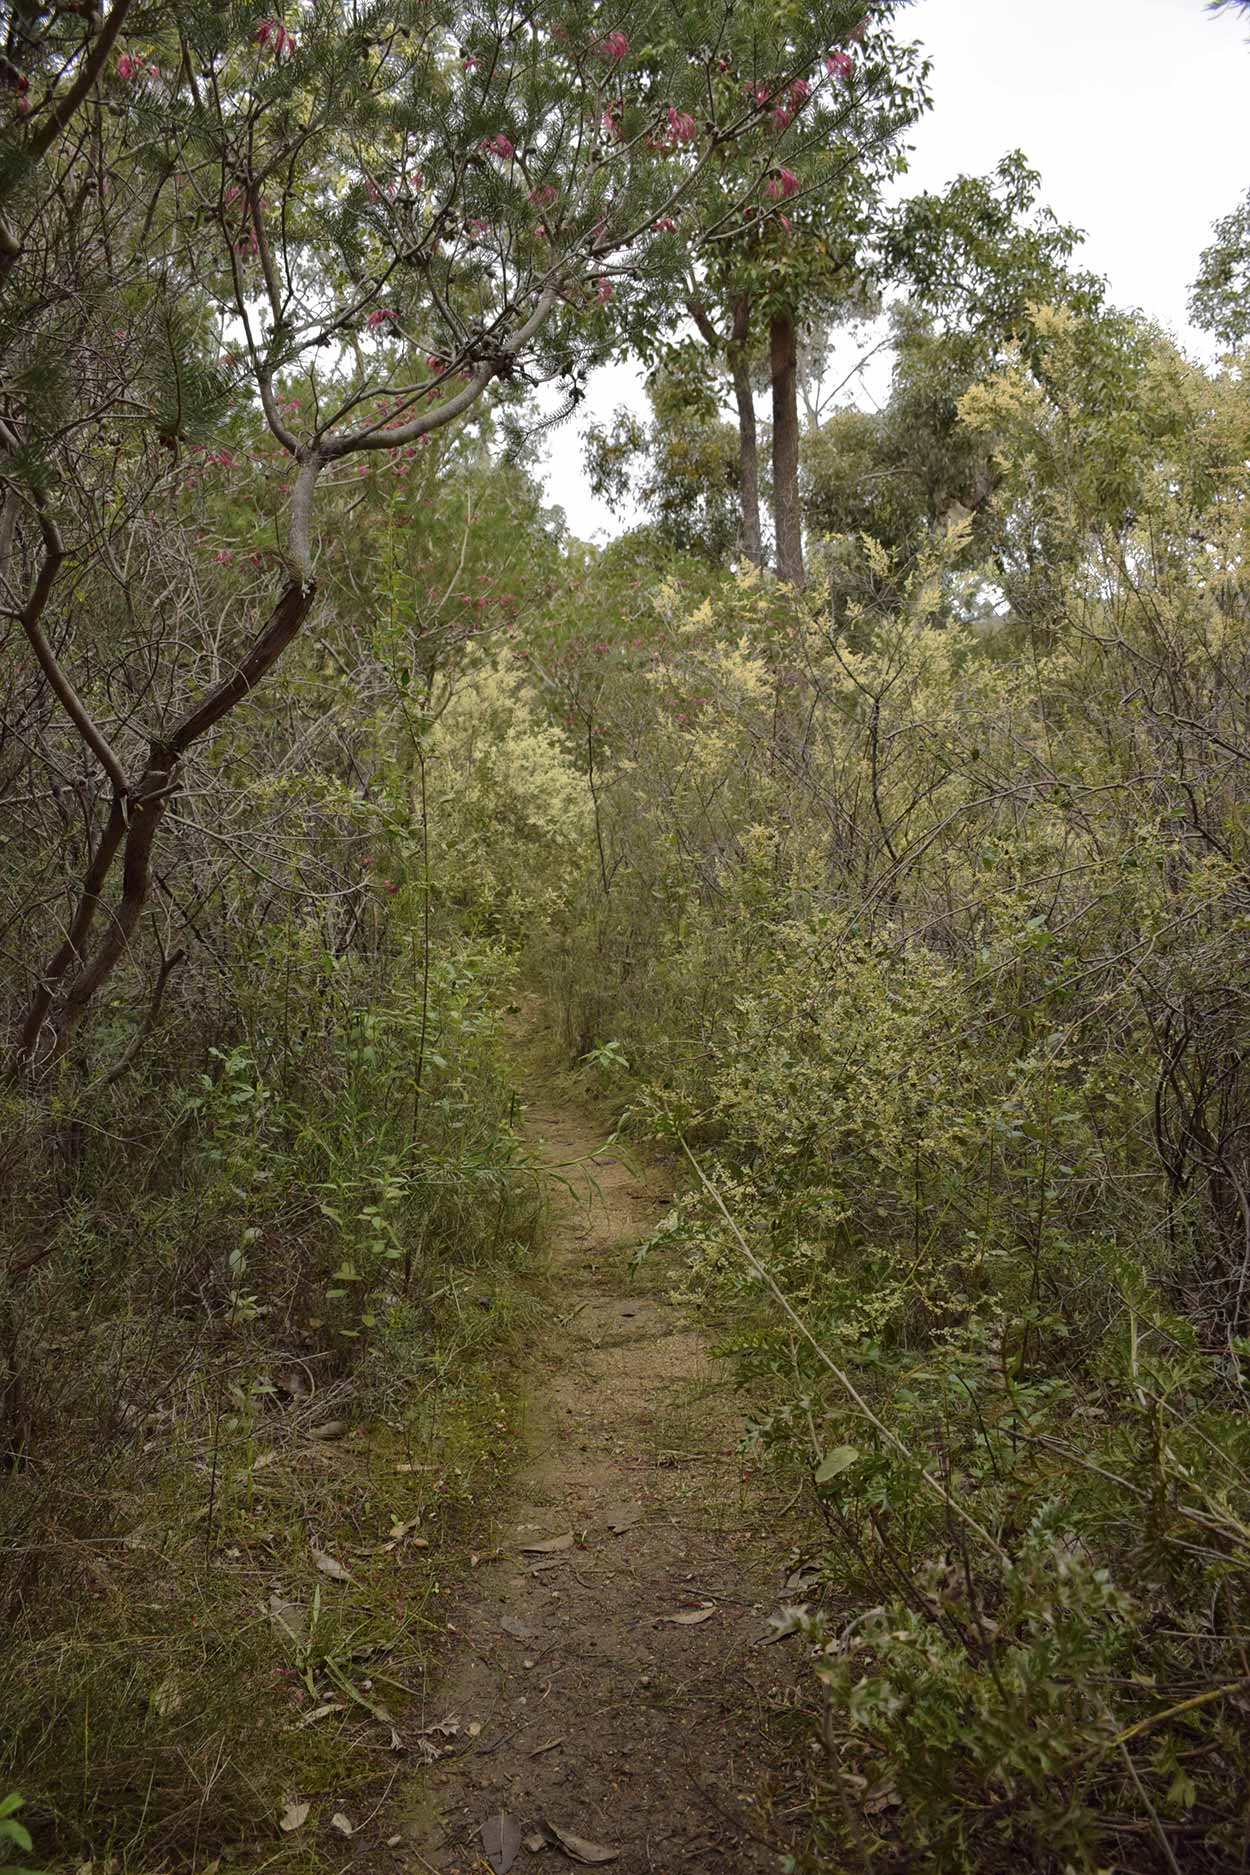 Walking through the thick vegetation of the Blue Wren Ramble Trail, Ellis Brook Valley Reserve, Perth, Western Australia